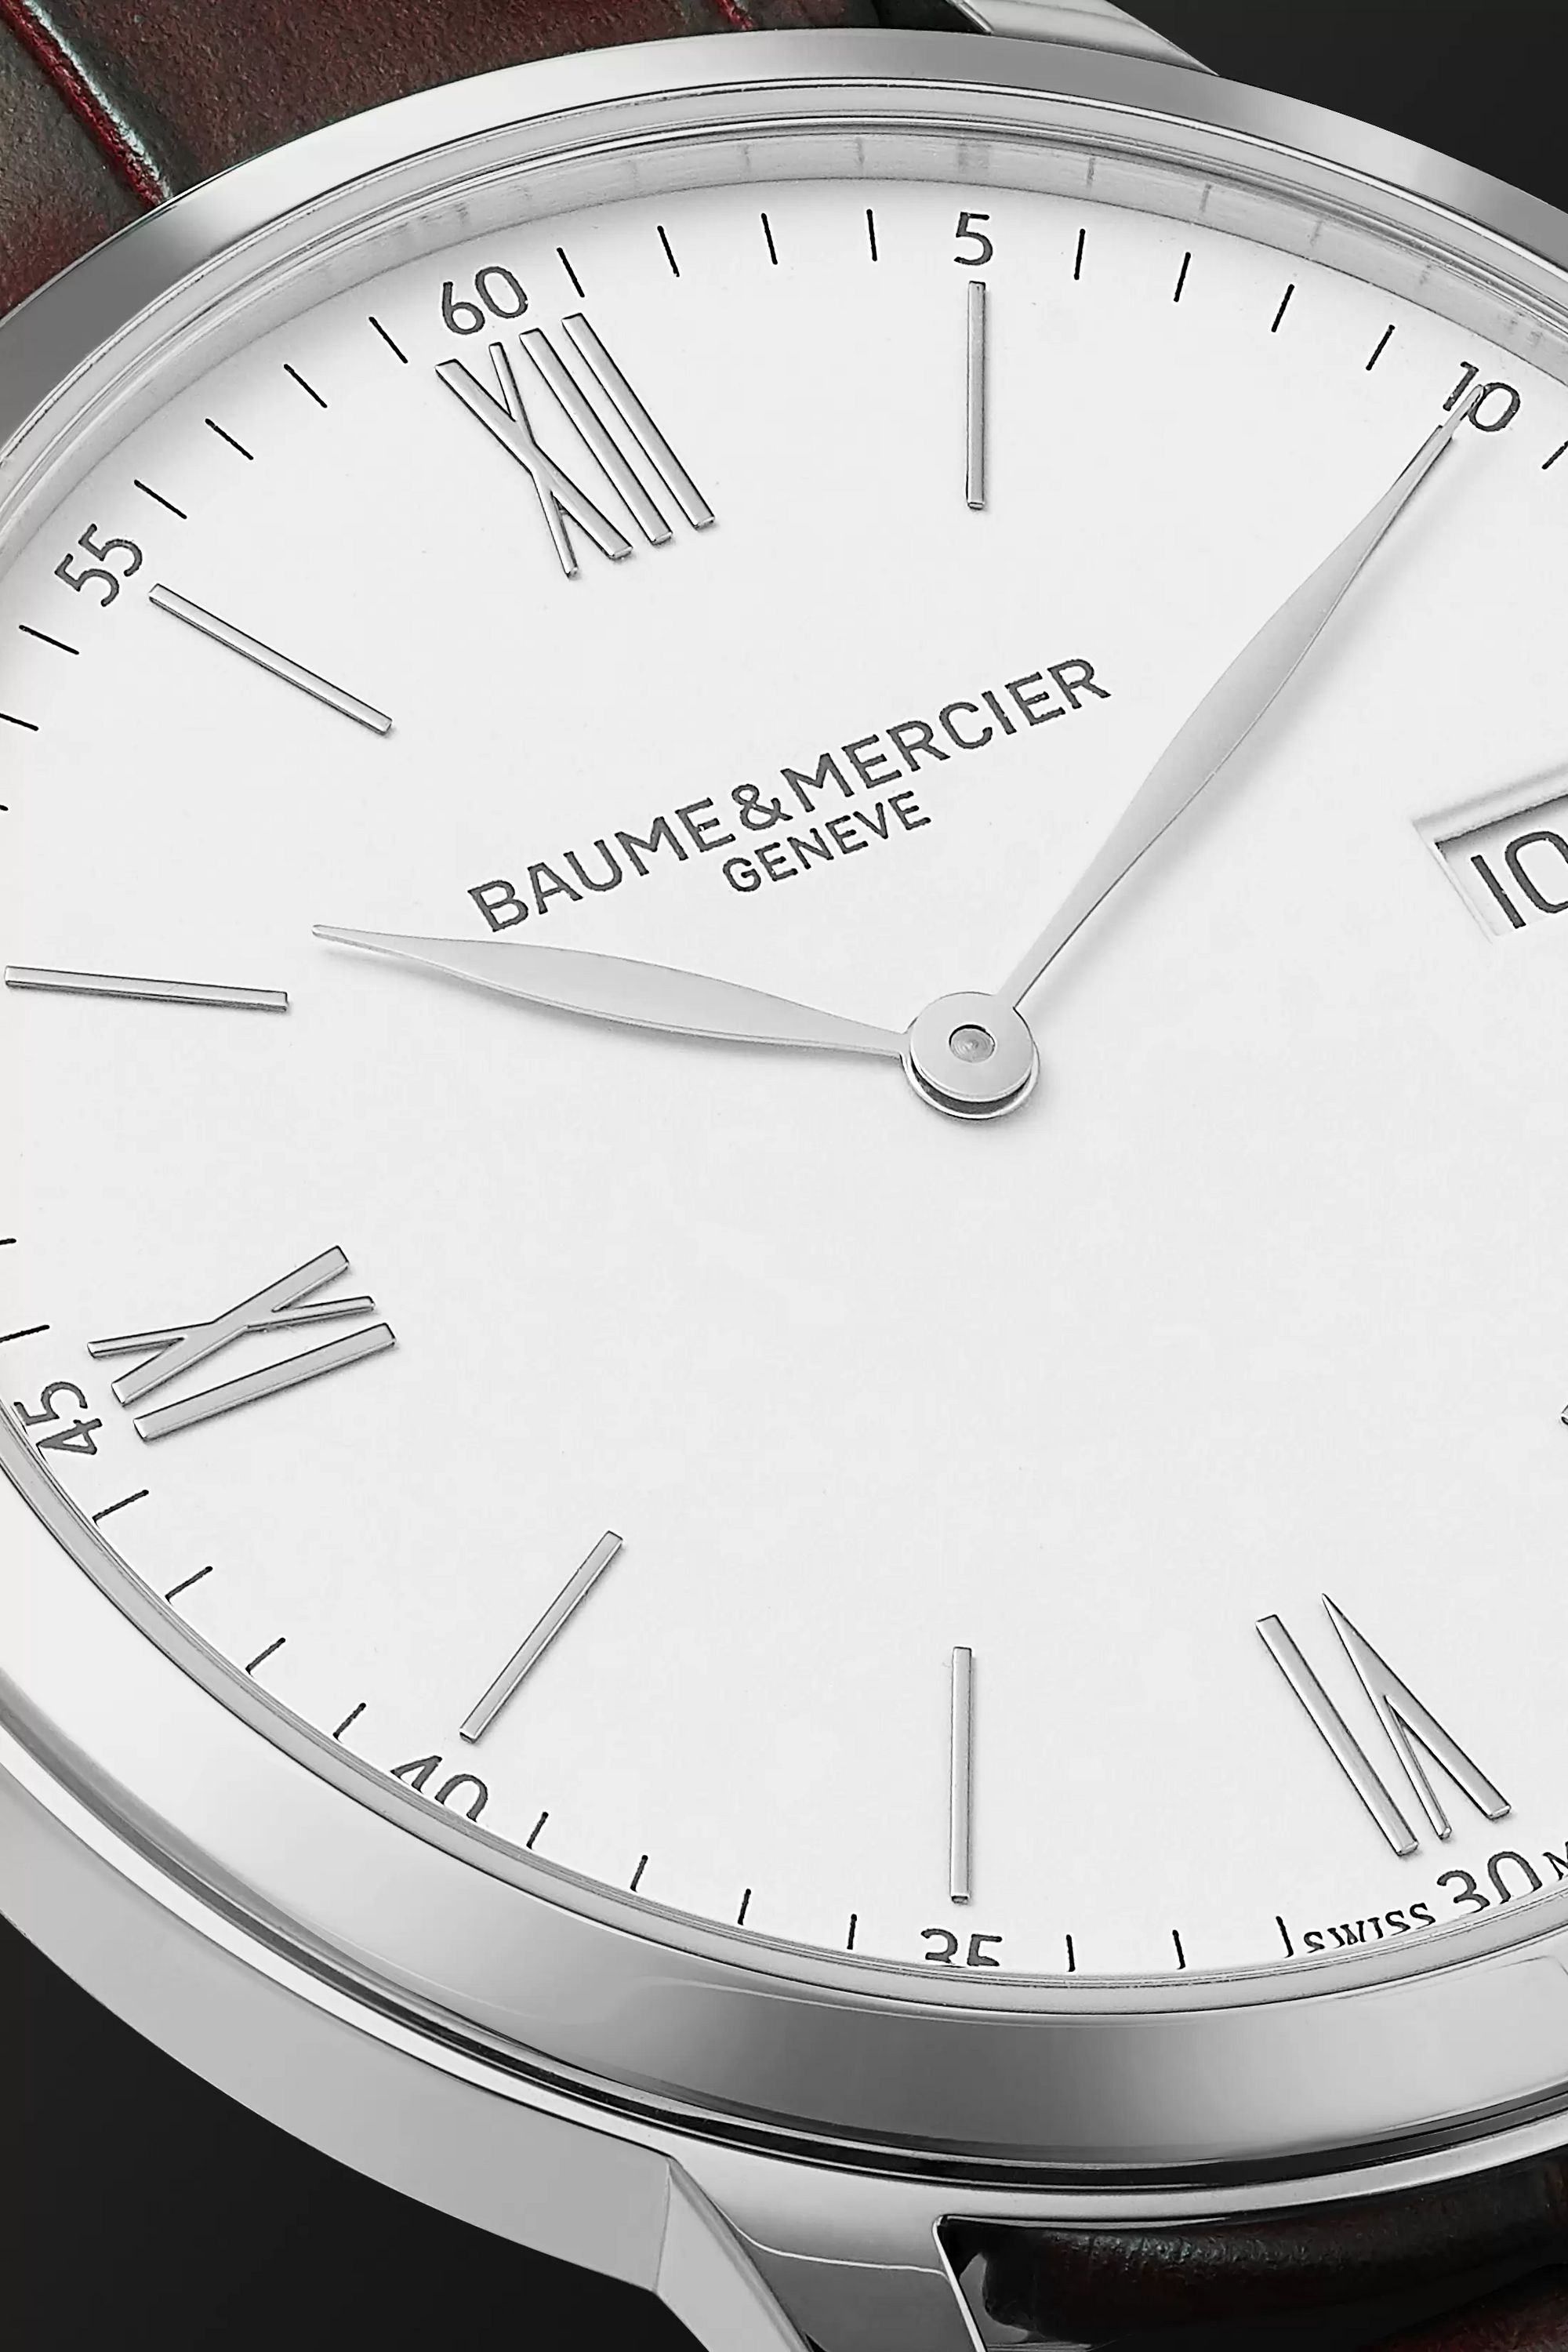 Baume & Mercier Classima 40mm Steel and Croc-Effect Leather Watch, Ref. No. M0A10508